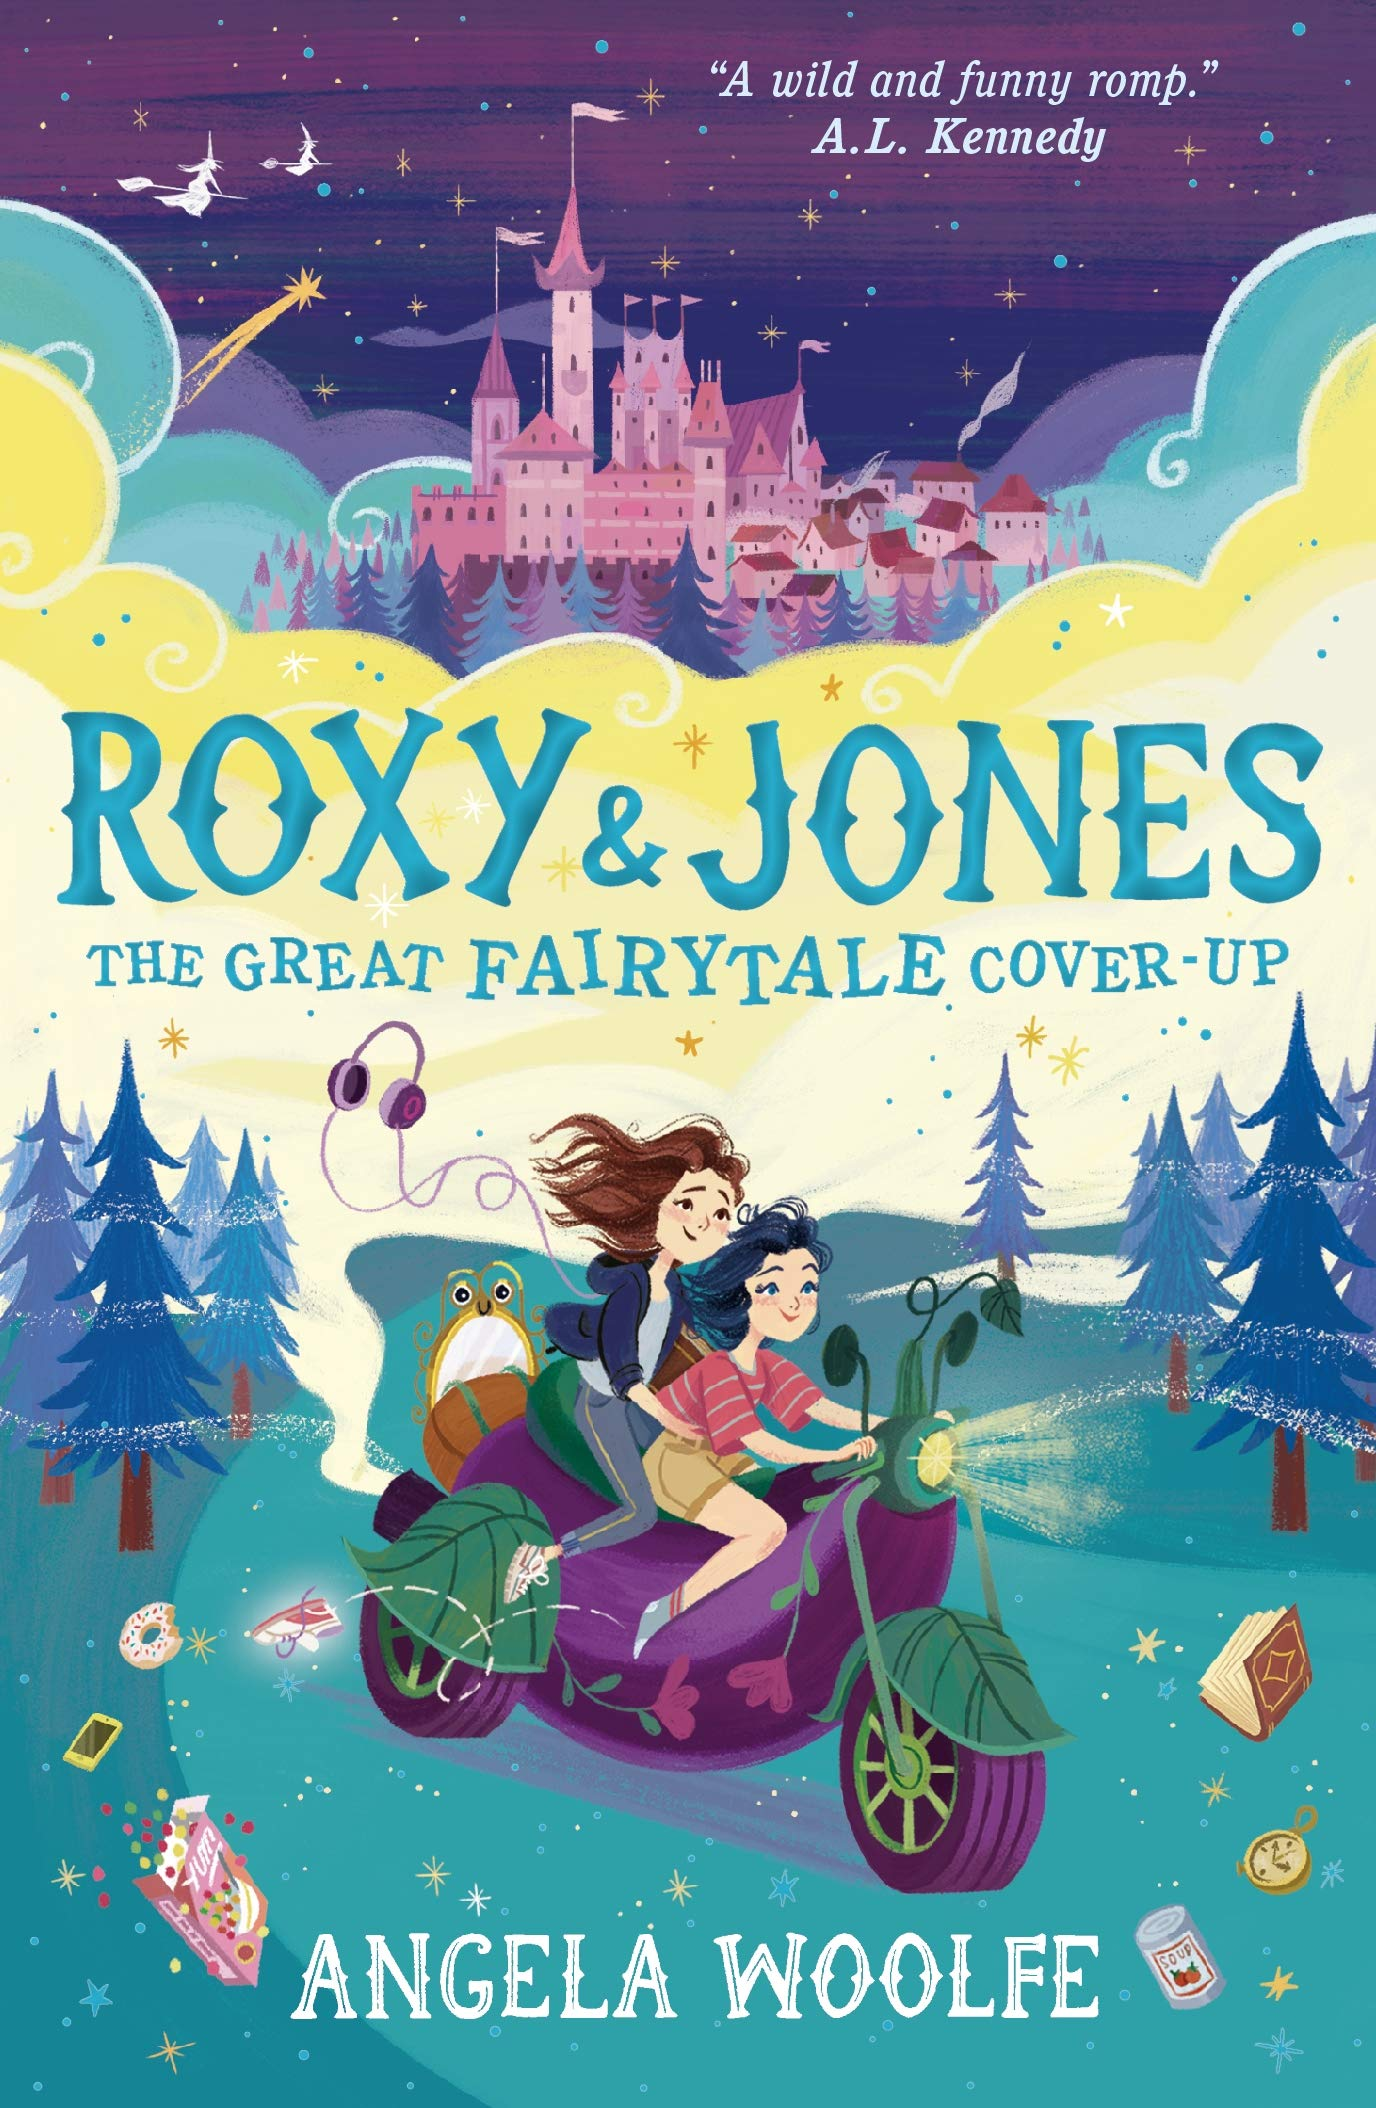 Roxy & Jones: The Great Fairytale Cover-Up  -  Paperback